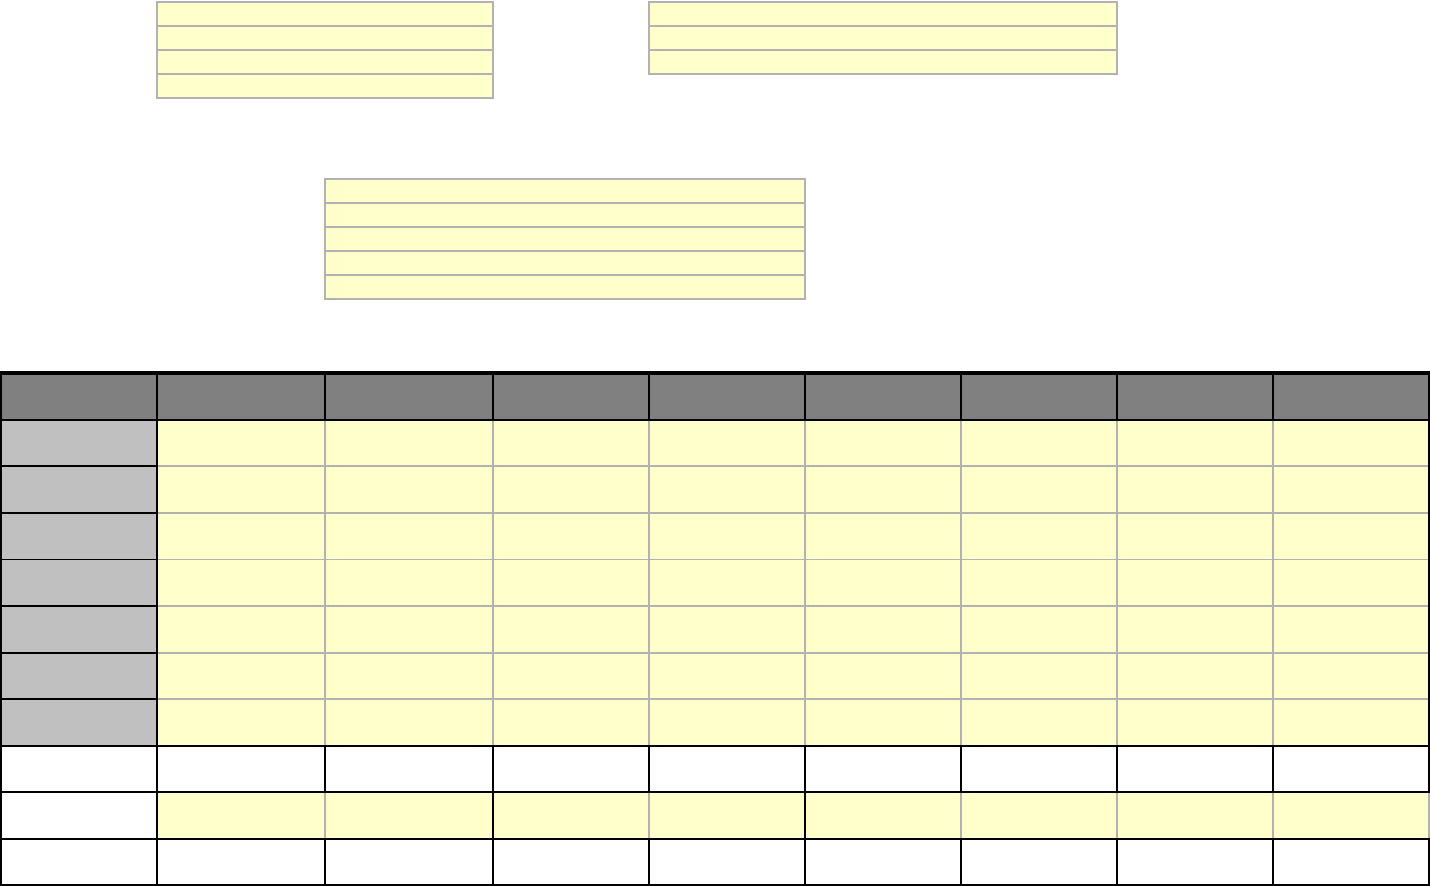 free project timesheet template xls 450kb 39 page s